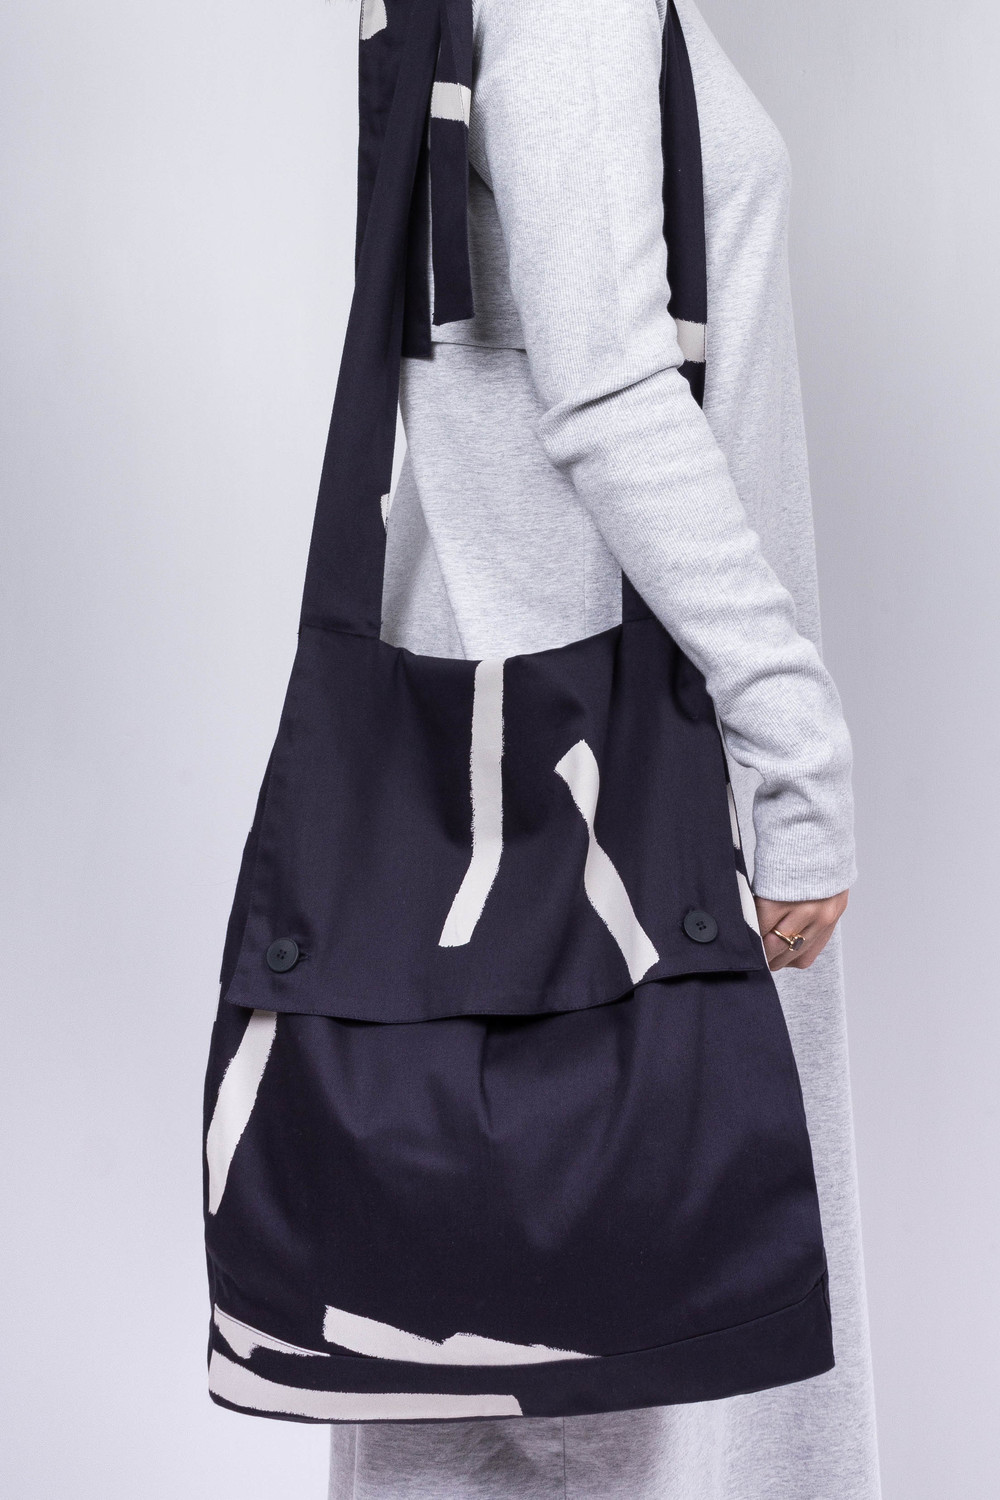 Kowtow Backpack NZD $89